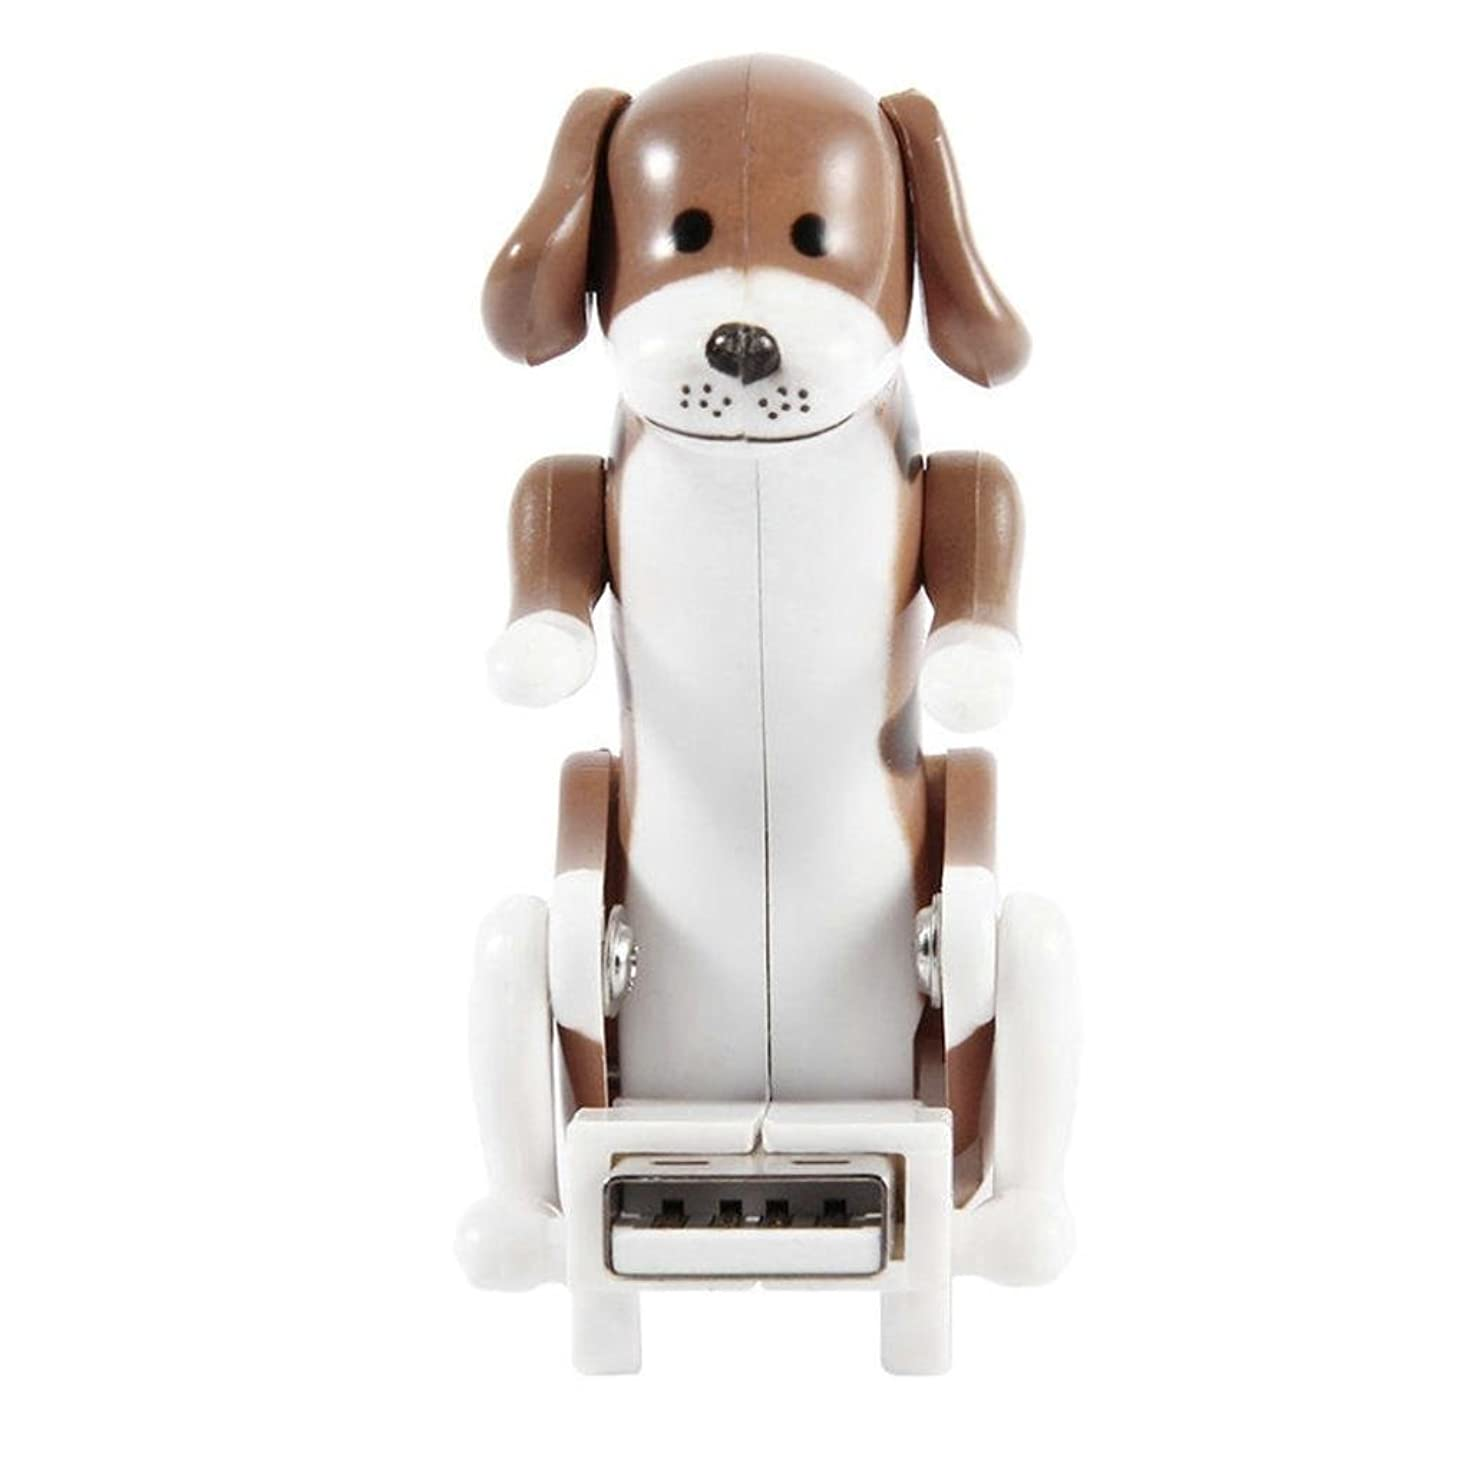 Livoty USB Flash Drives Toy,Funny Cute USB Pet Humping Spot Dog Toy Relief Stress Atmosphere to The Boring Office Life Gift (Brown)[No Storage]